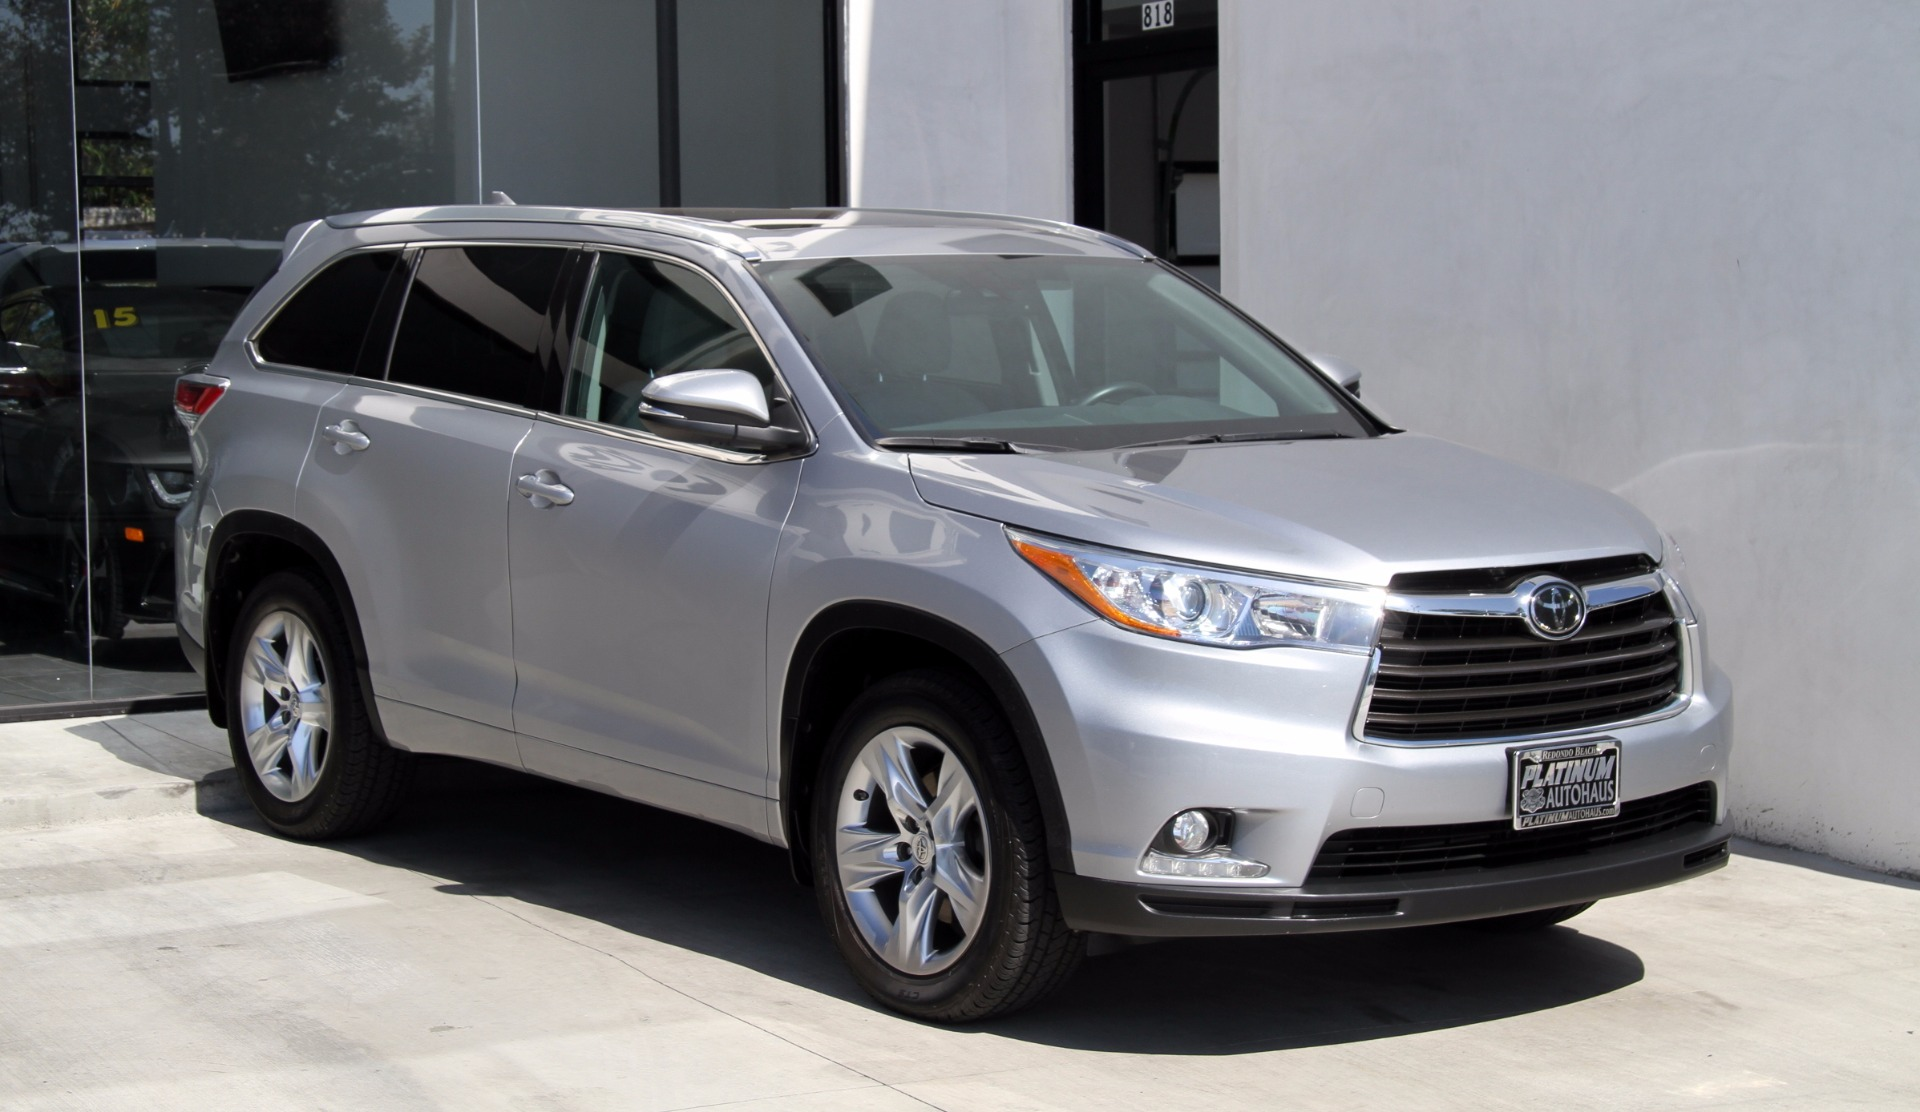 Vehicles For Sale Near Me >> 2015 Toyota Highlander Limited Stock # 5829B for sale near Redondo Beach, CA | CA Toyota Dealer